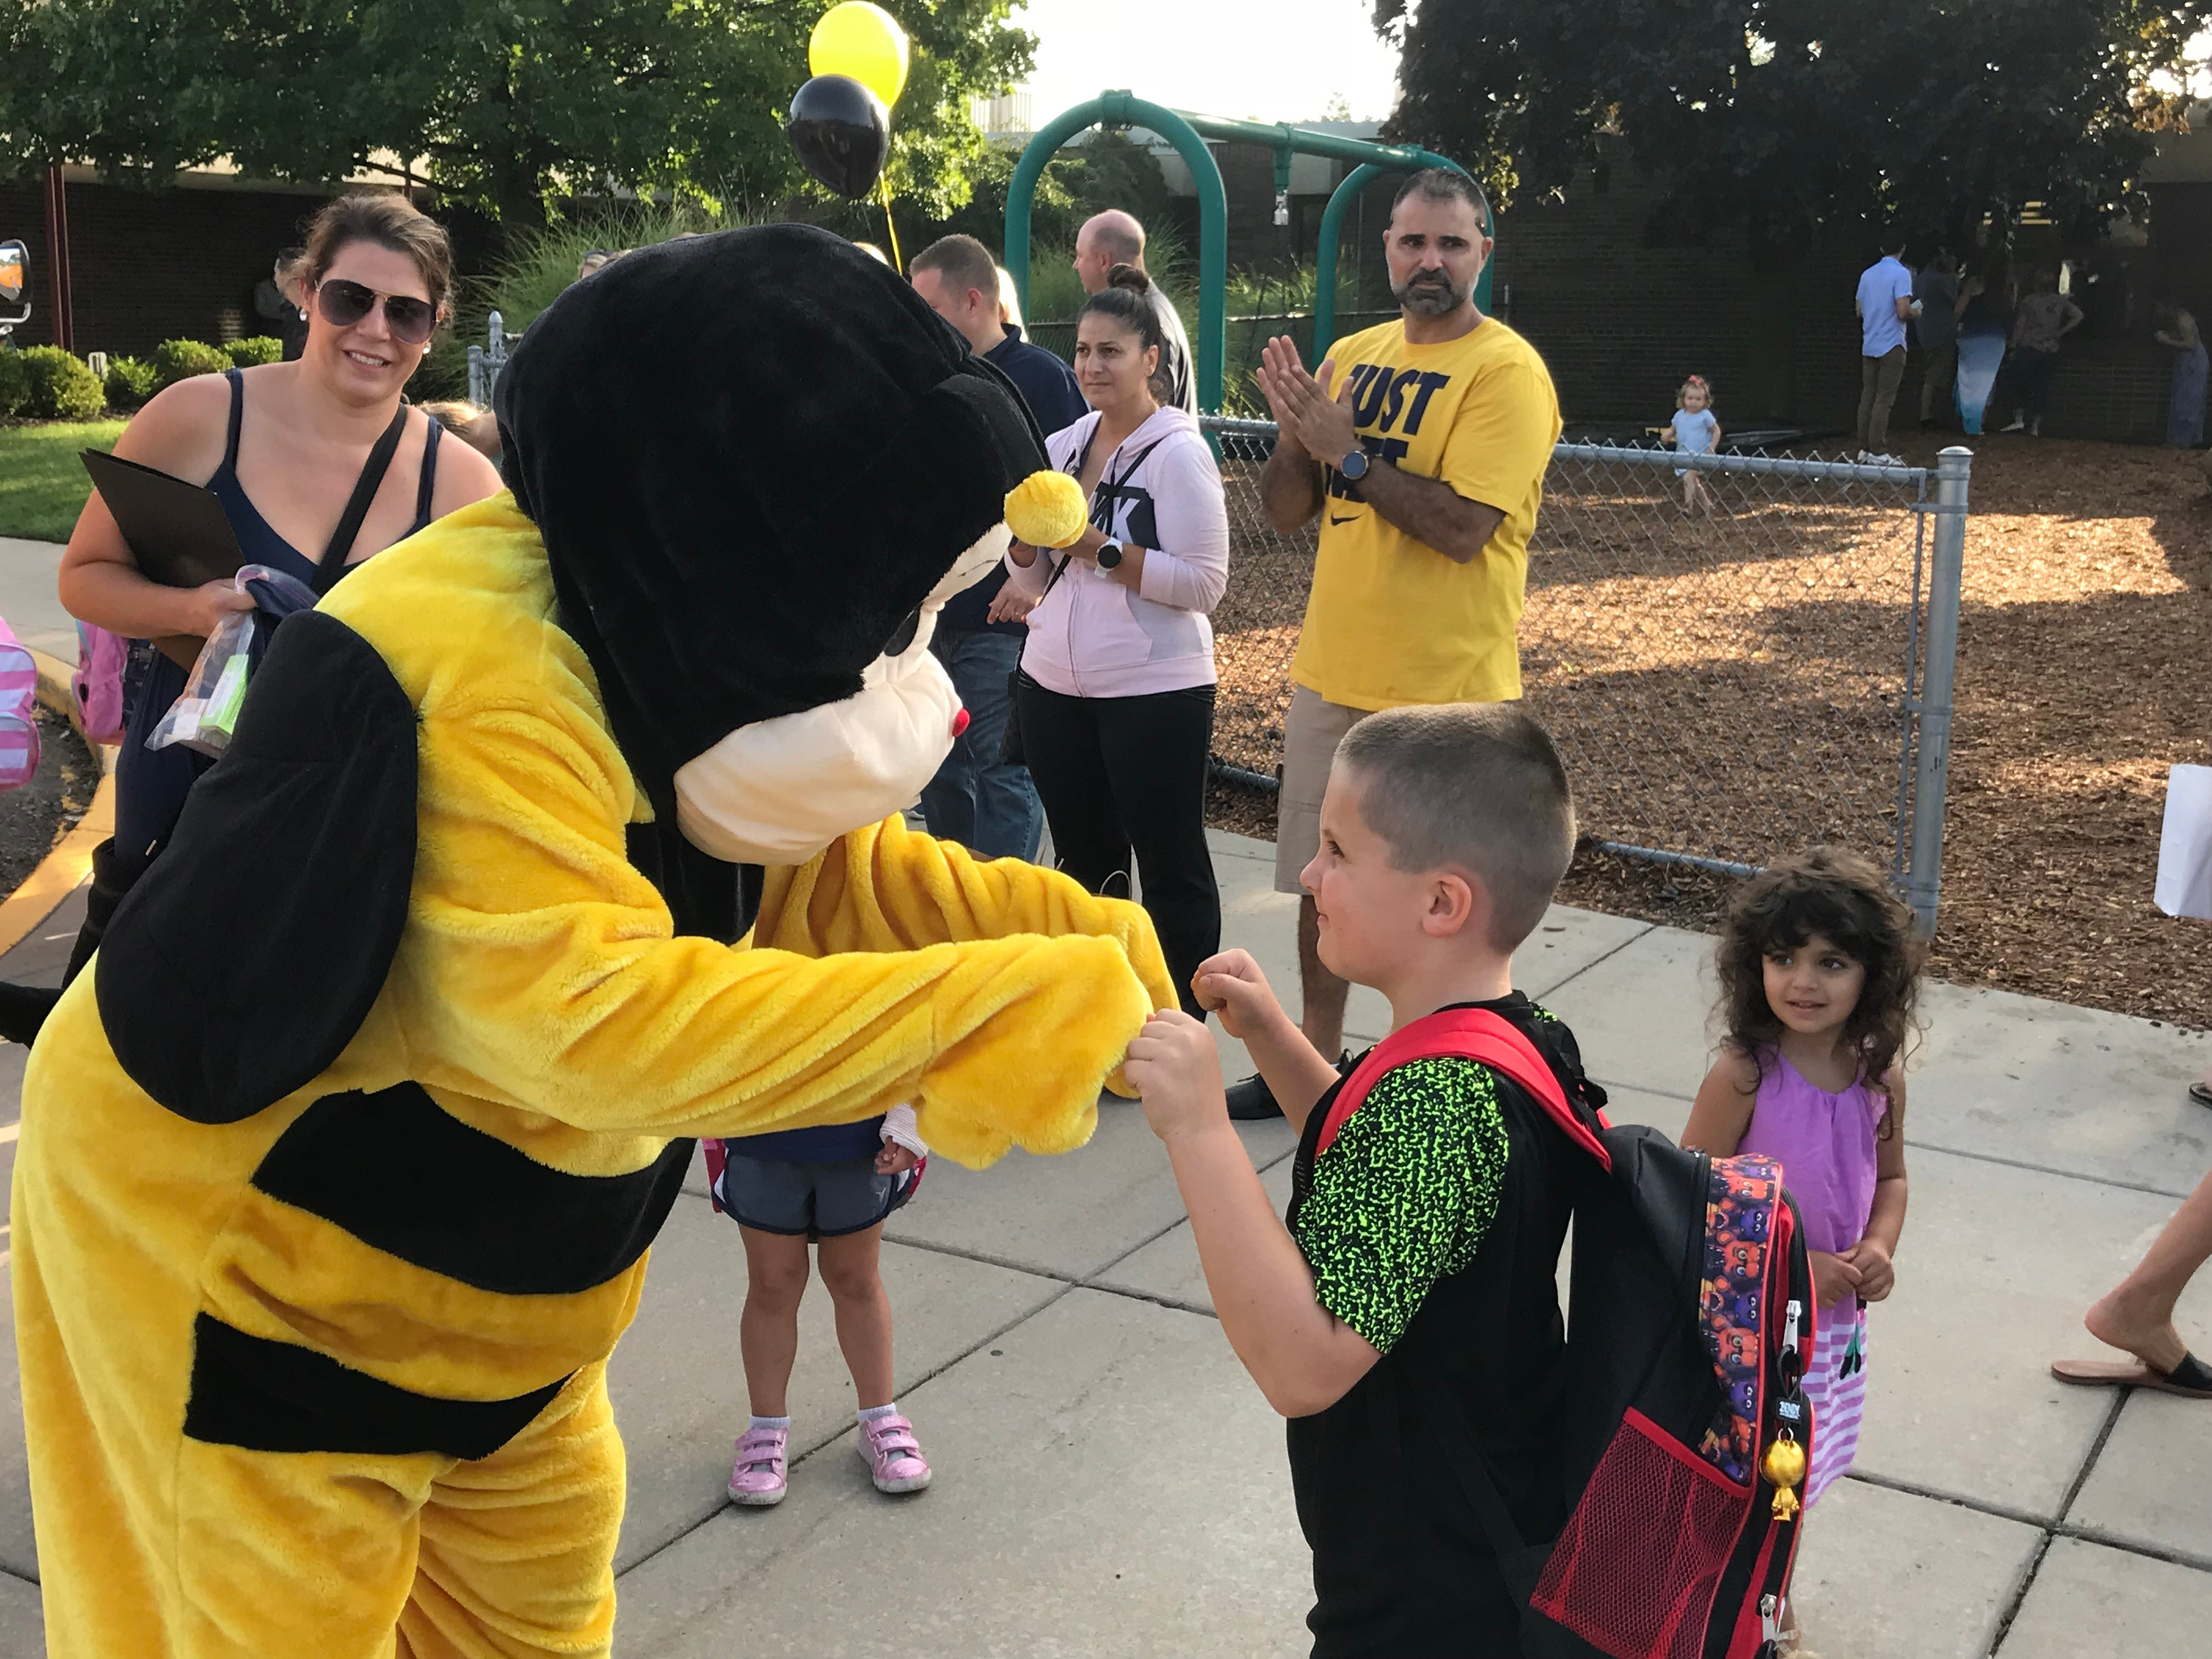 The Isbister Bee welcomes students back on the first day of school at Isbister Elementary School in Plymouth. Plymouth-Canton schools joined districts around the state on Tuesday's first day of school.